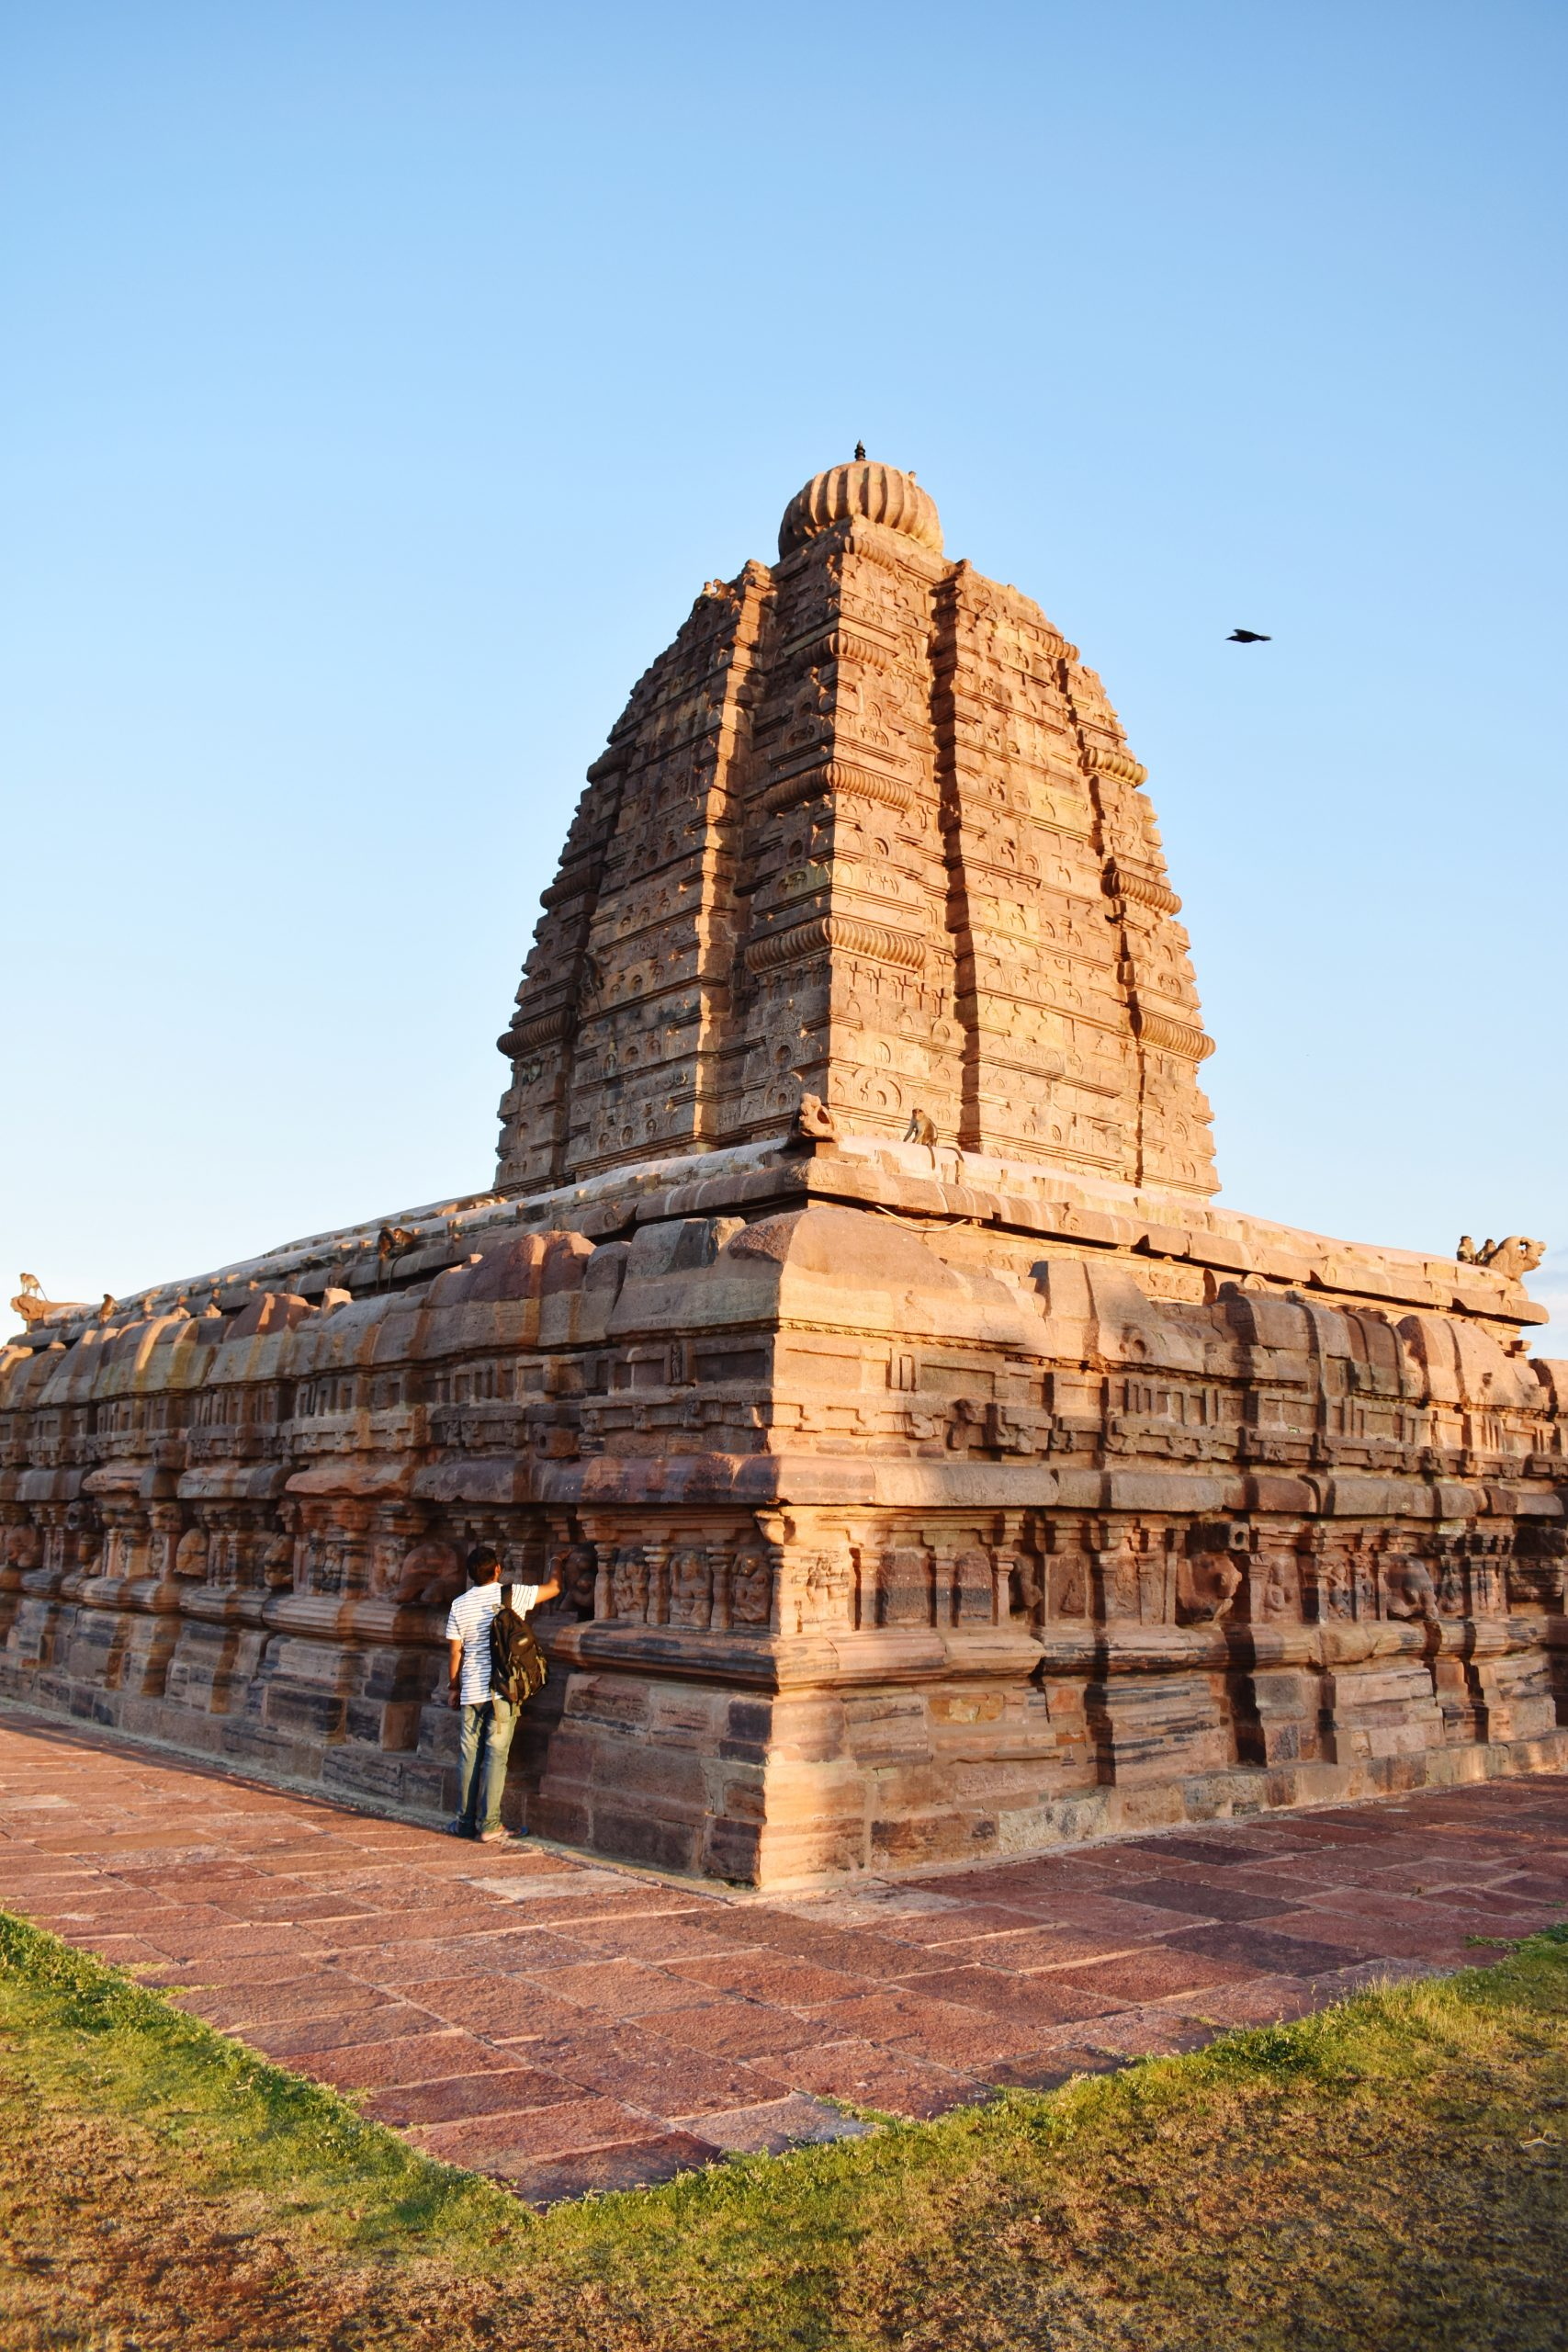 An ancient Indian temple